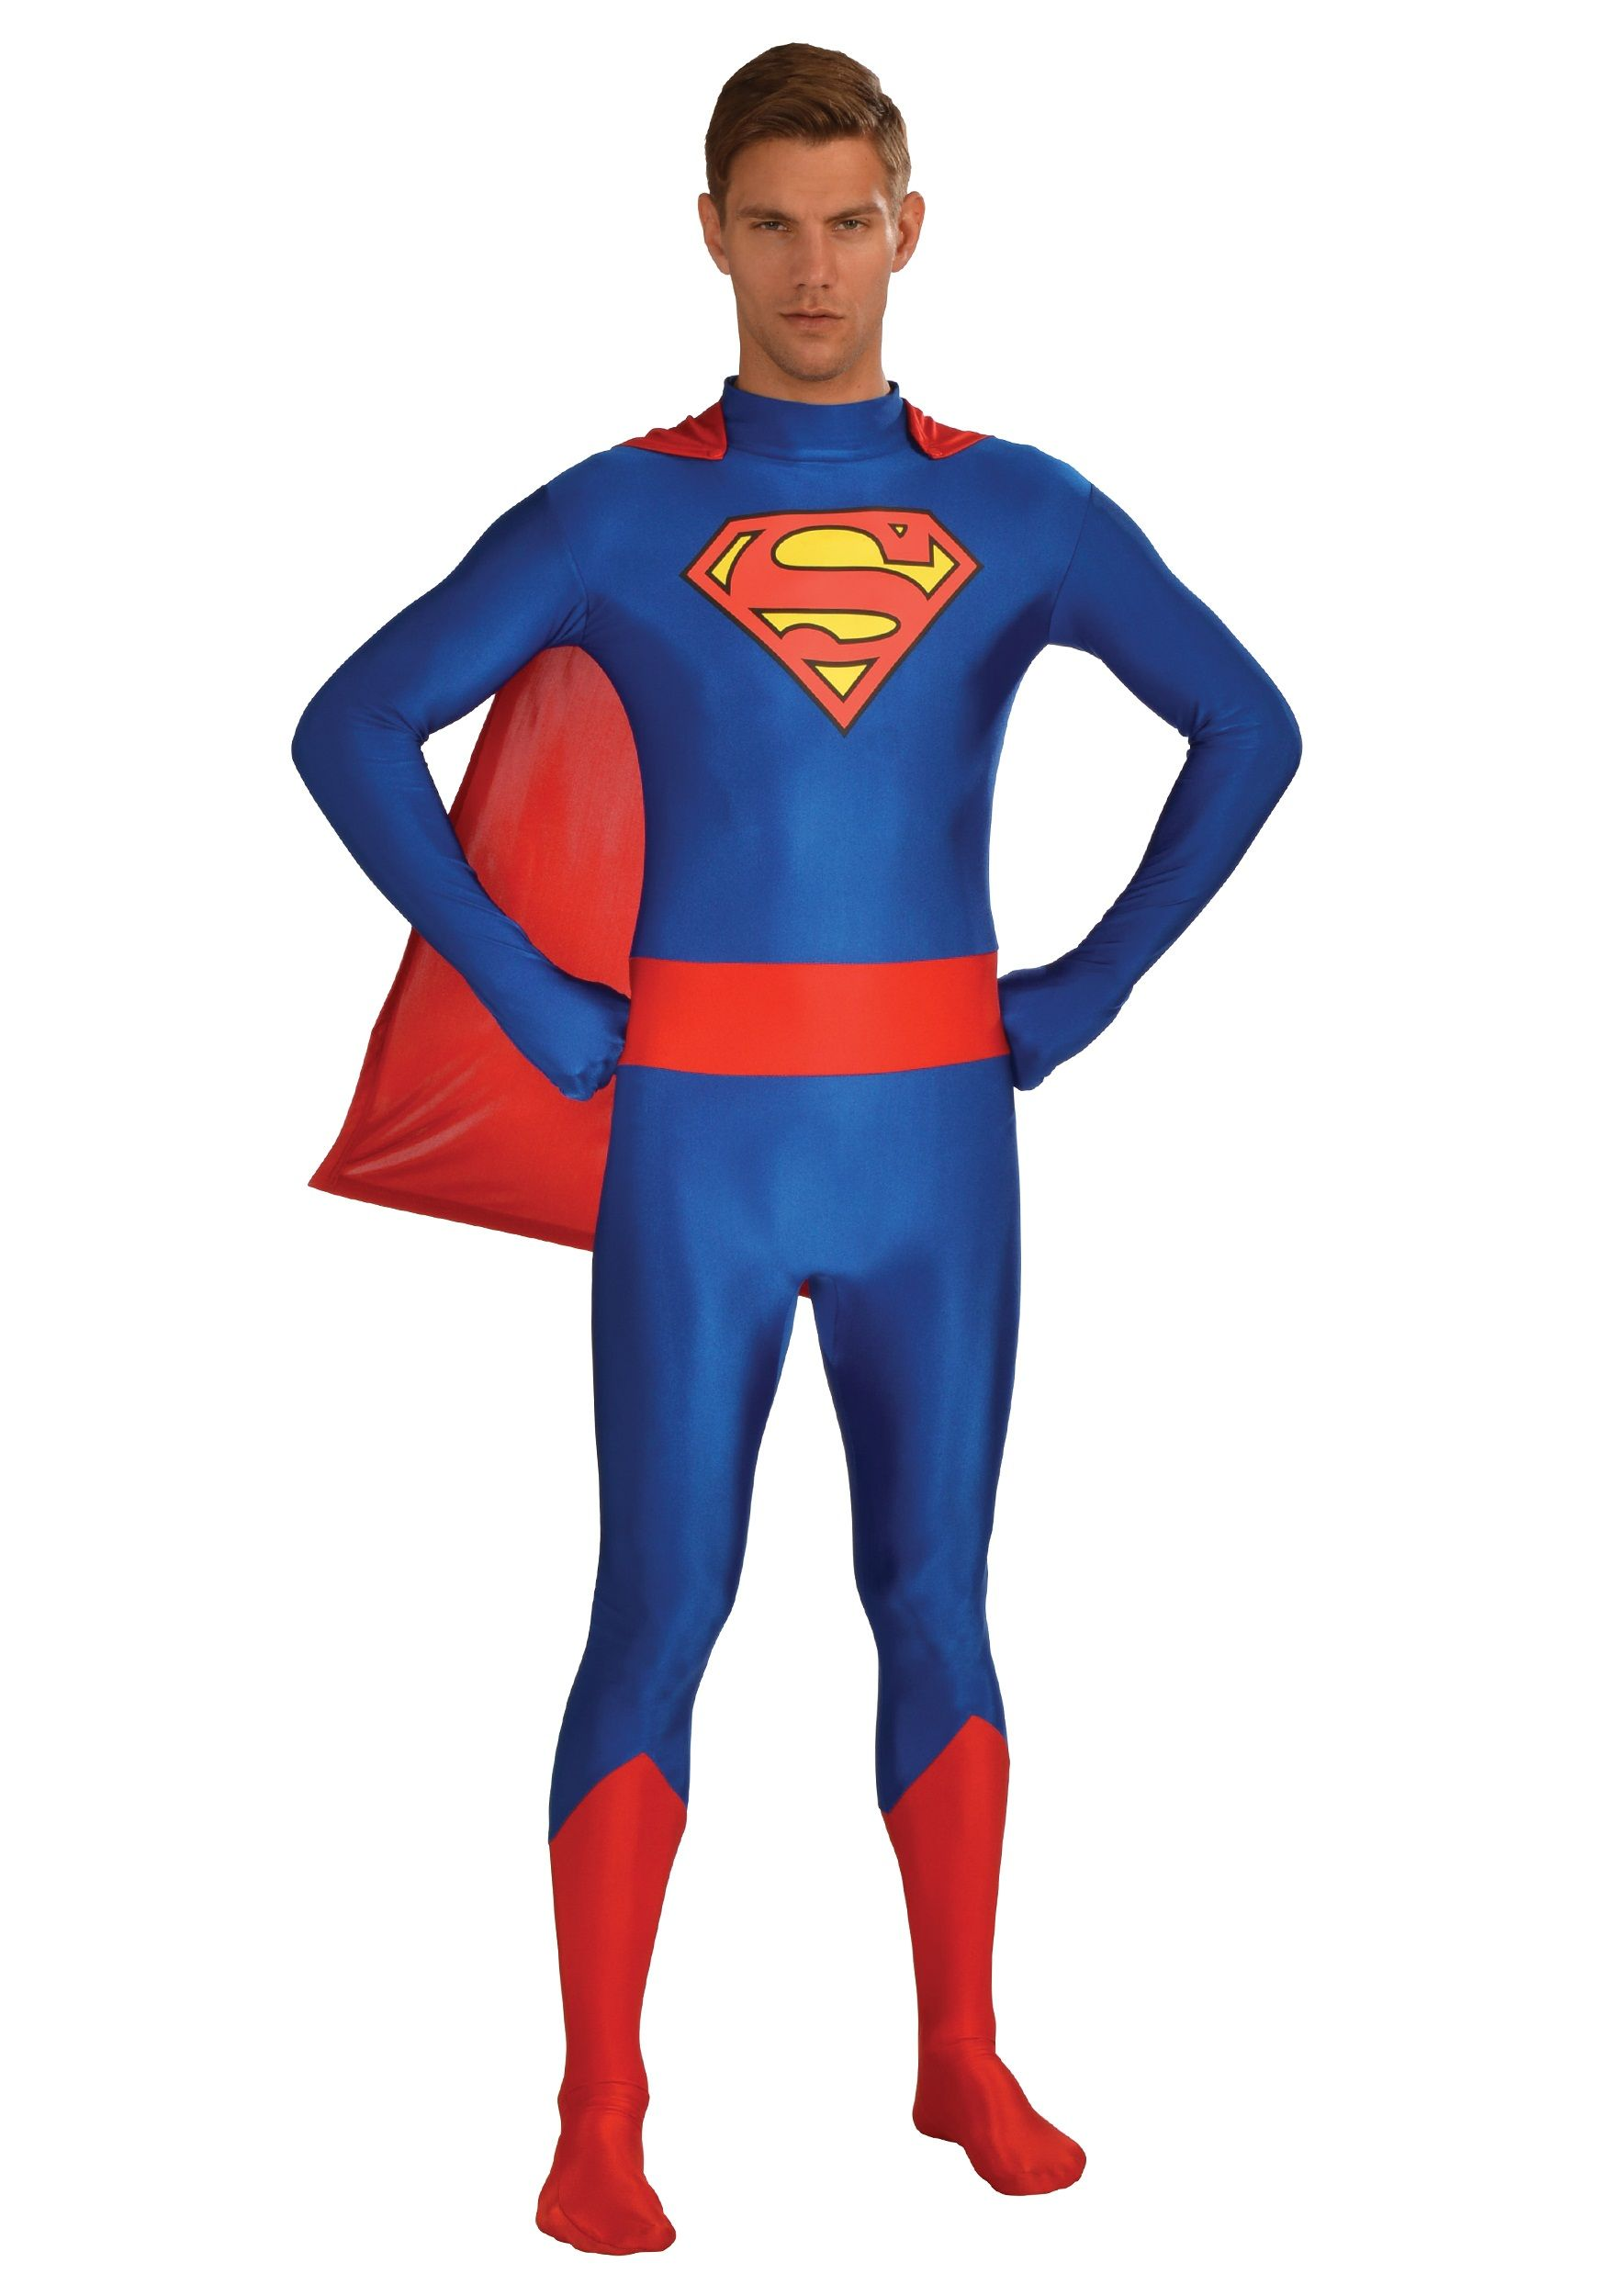 Wear this skintight bodysuit to instantly become everyoneu0027s favorite superhero from Krypton! This Superman/Supergirl Zentai Bodysuit for adults is a fun way ...  sc 1 st  Pinterest & Superman Unisex Skin Suit | 2017List | Pinterest | Unisex Costumes ...